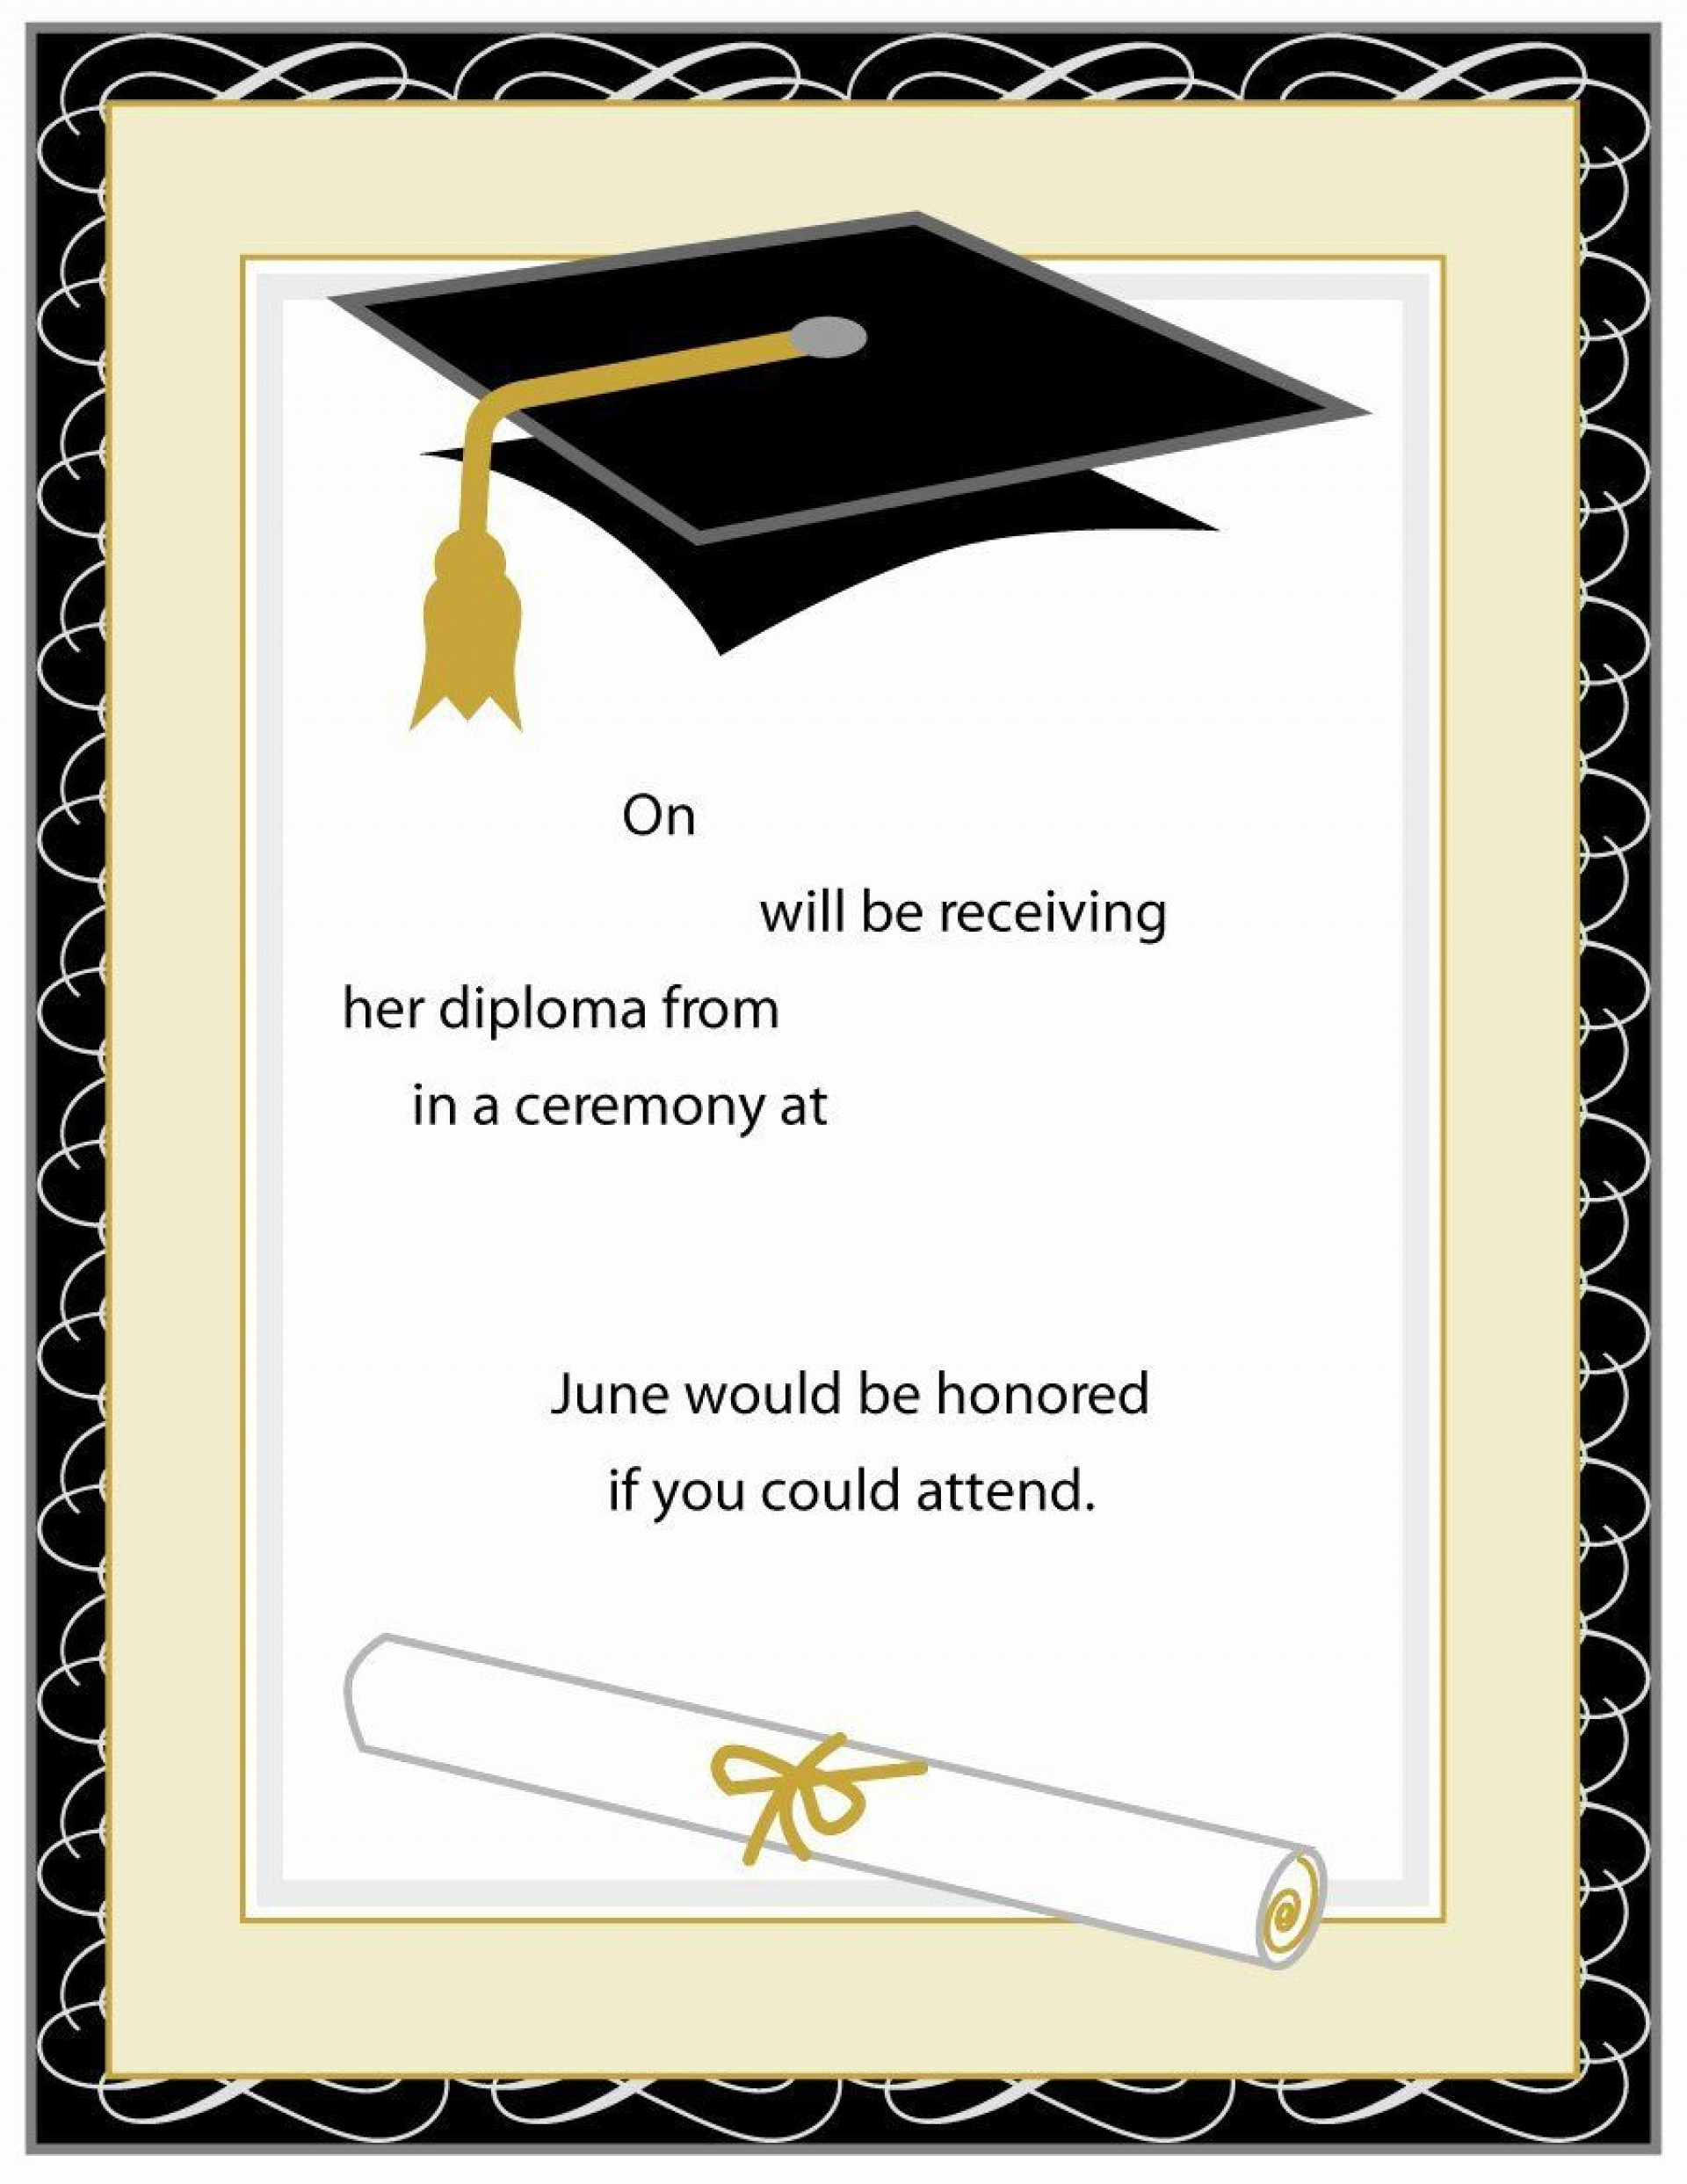 007 Surprising Free Graduation Announcement Template Example  Invitation Microsoft Word Printable Kindergarten1920